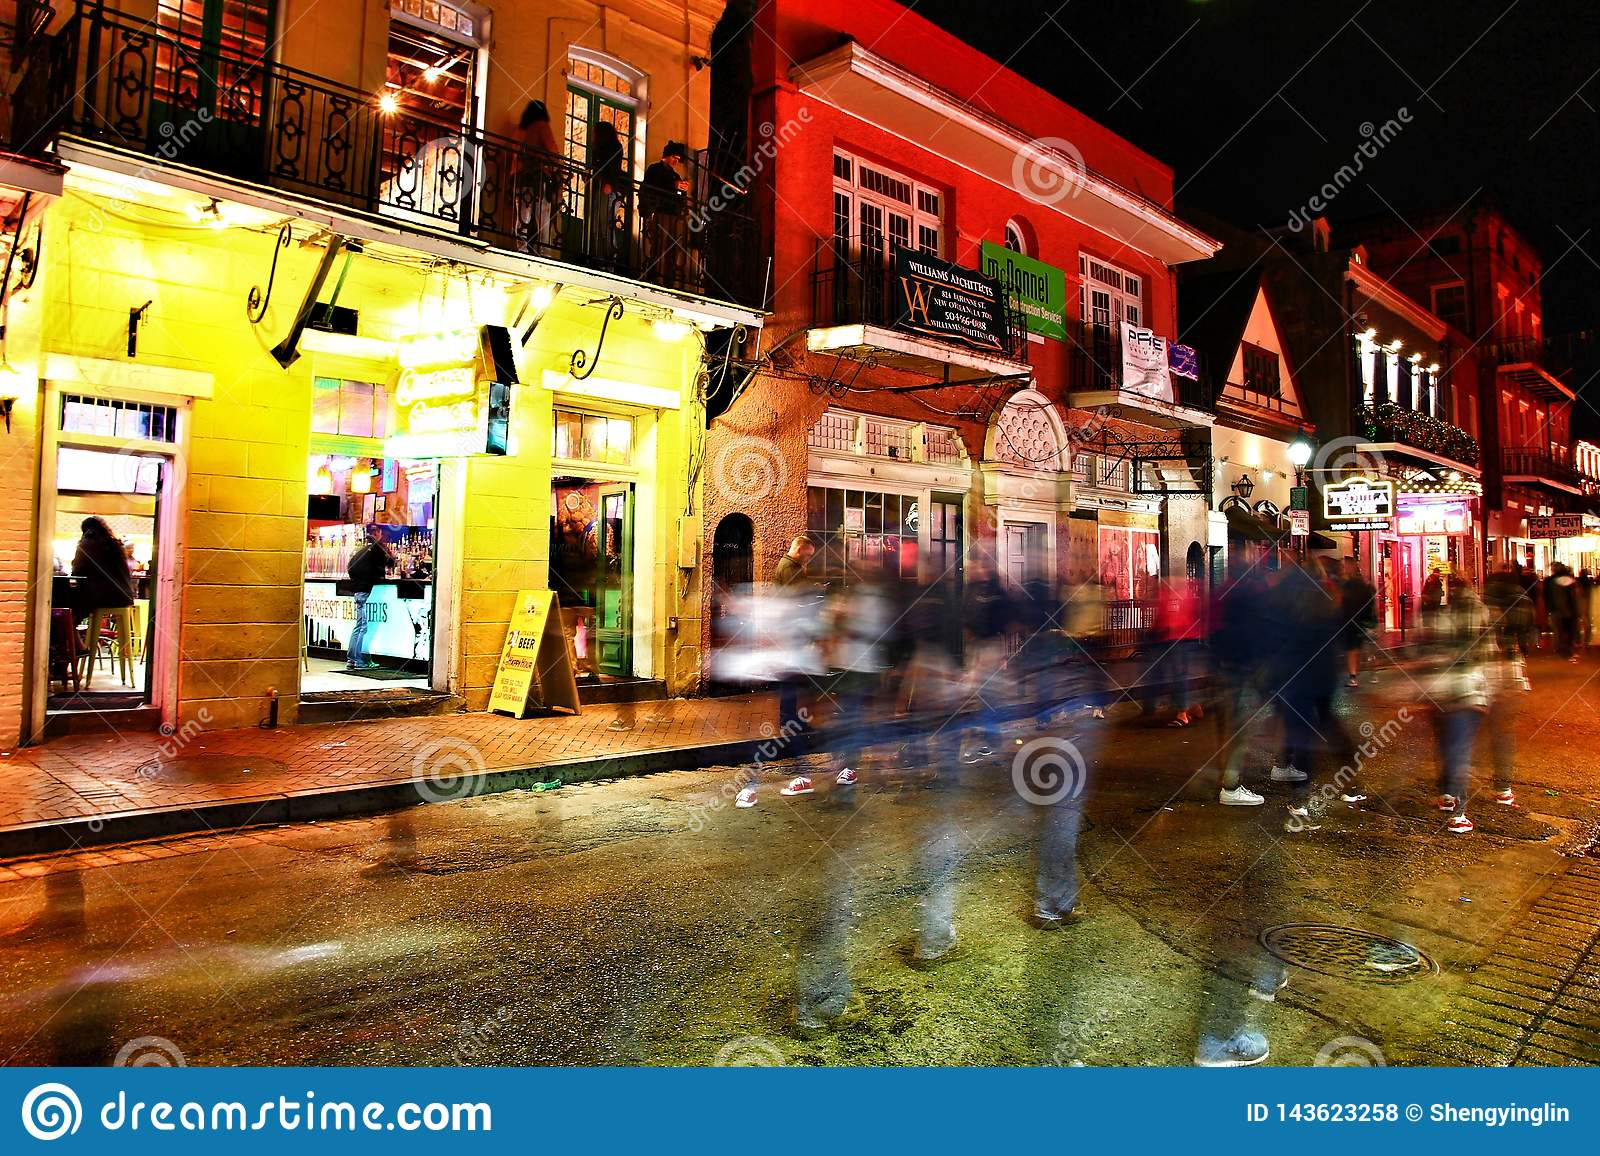 Pubs and bars with neon lights in the French Quarter, New Orleans Louisiana